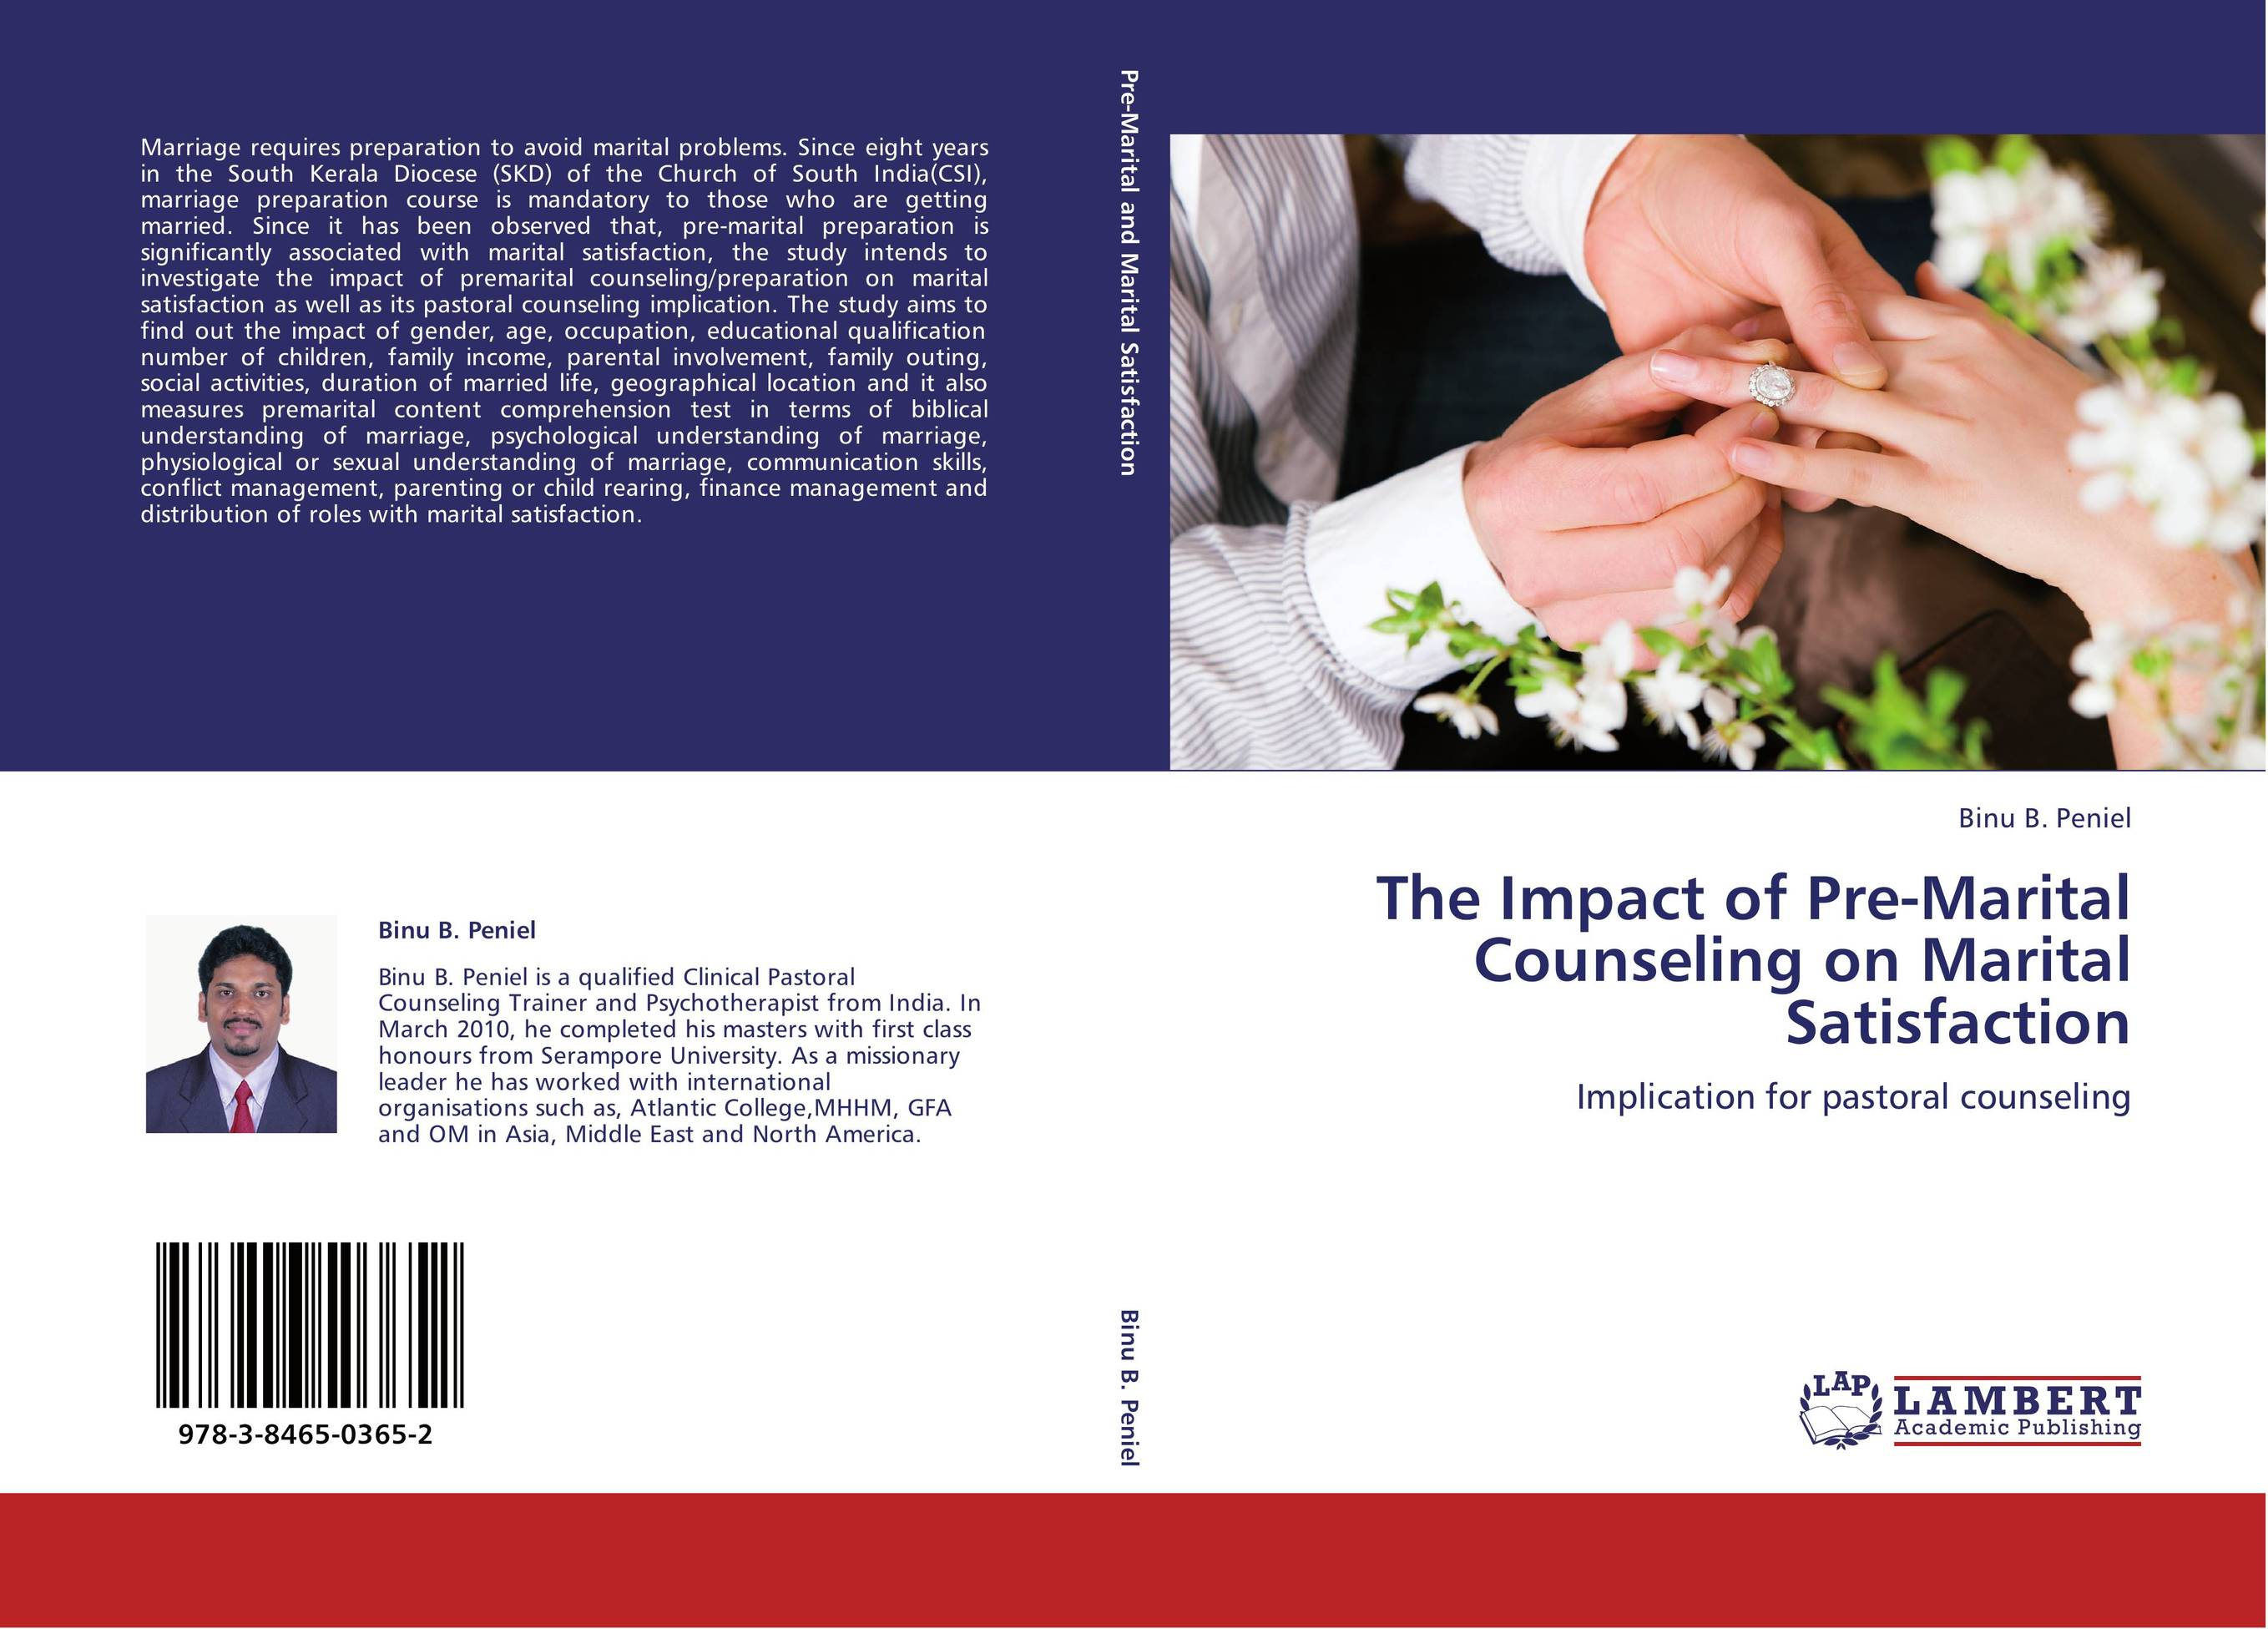 bereavement pastoral counseling thesis Appropriate pastoral care and counseling for pastors through the statistical data, survey, interviews and model of hope established, pastors will understand the significance of marriage and family and will seek the help.